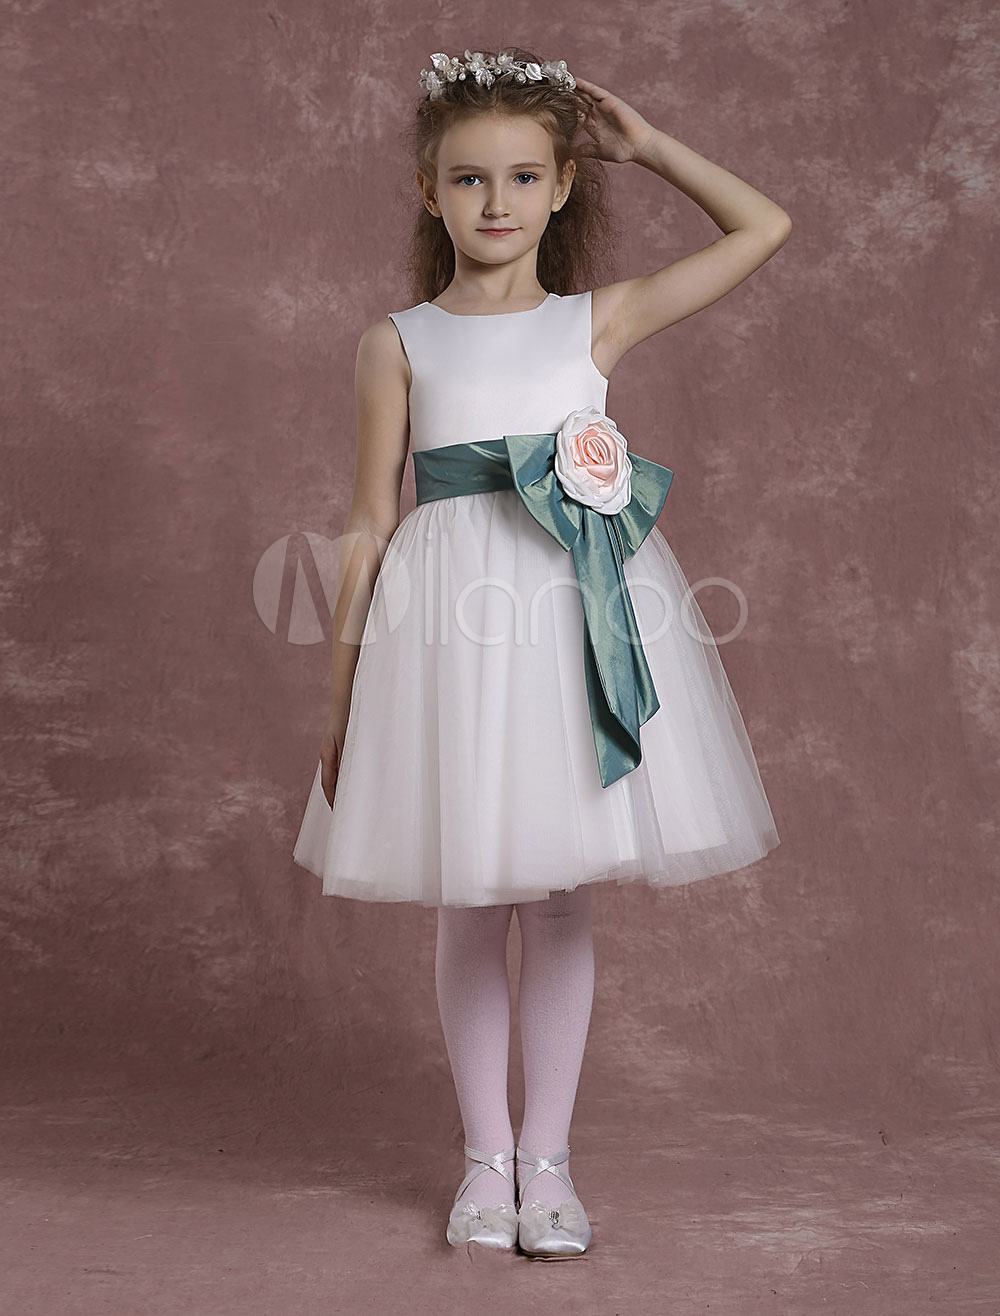 Buy Ivory Flower Girl Dresses A Line Tulle Pageant Dresses Toddler's Satin Knee Length Crewneck Sleeveless Formal Dresses With Flower Sash for $68.39 in Milanoo store